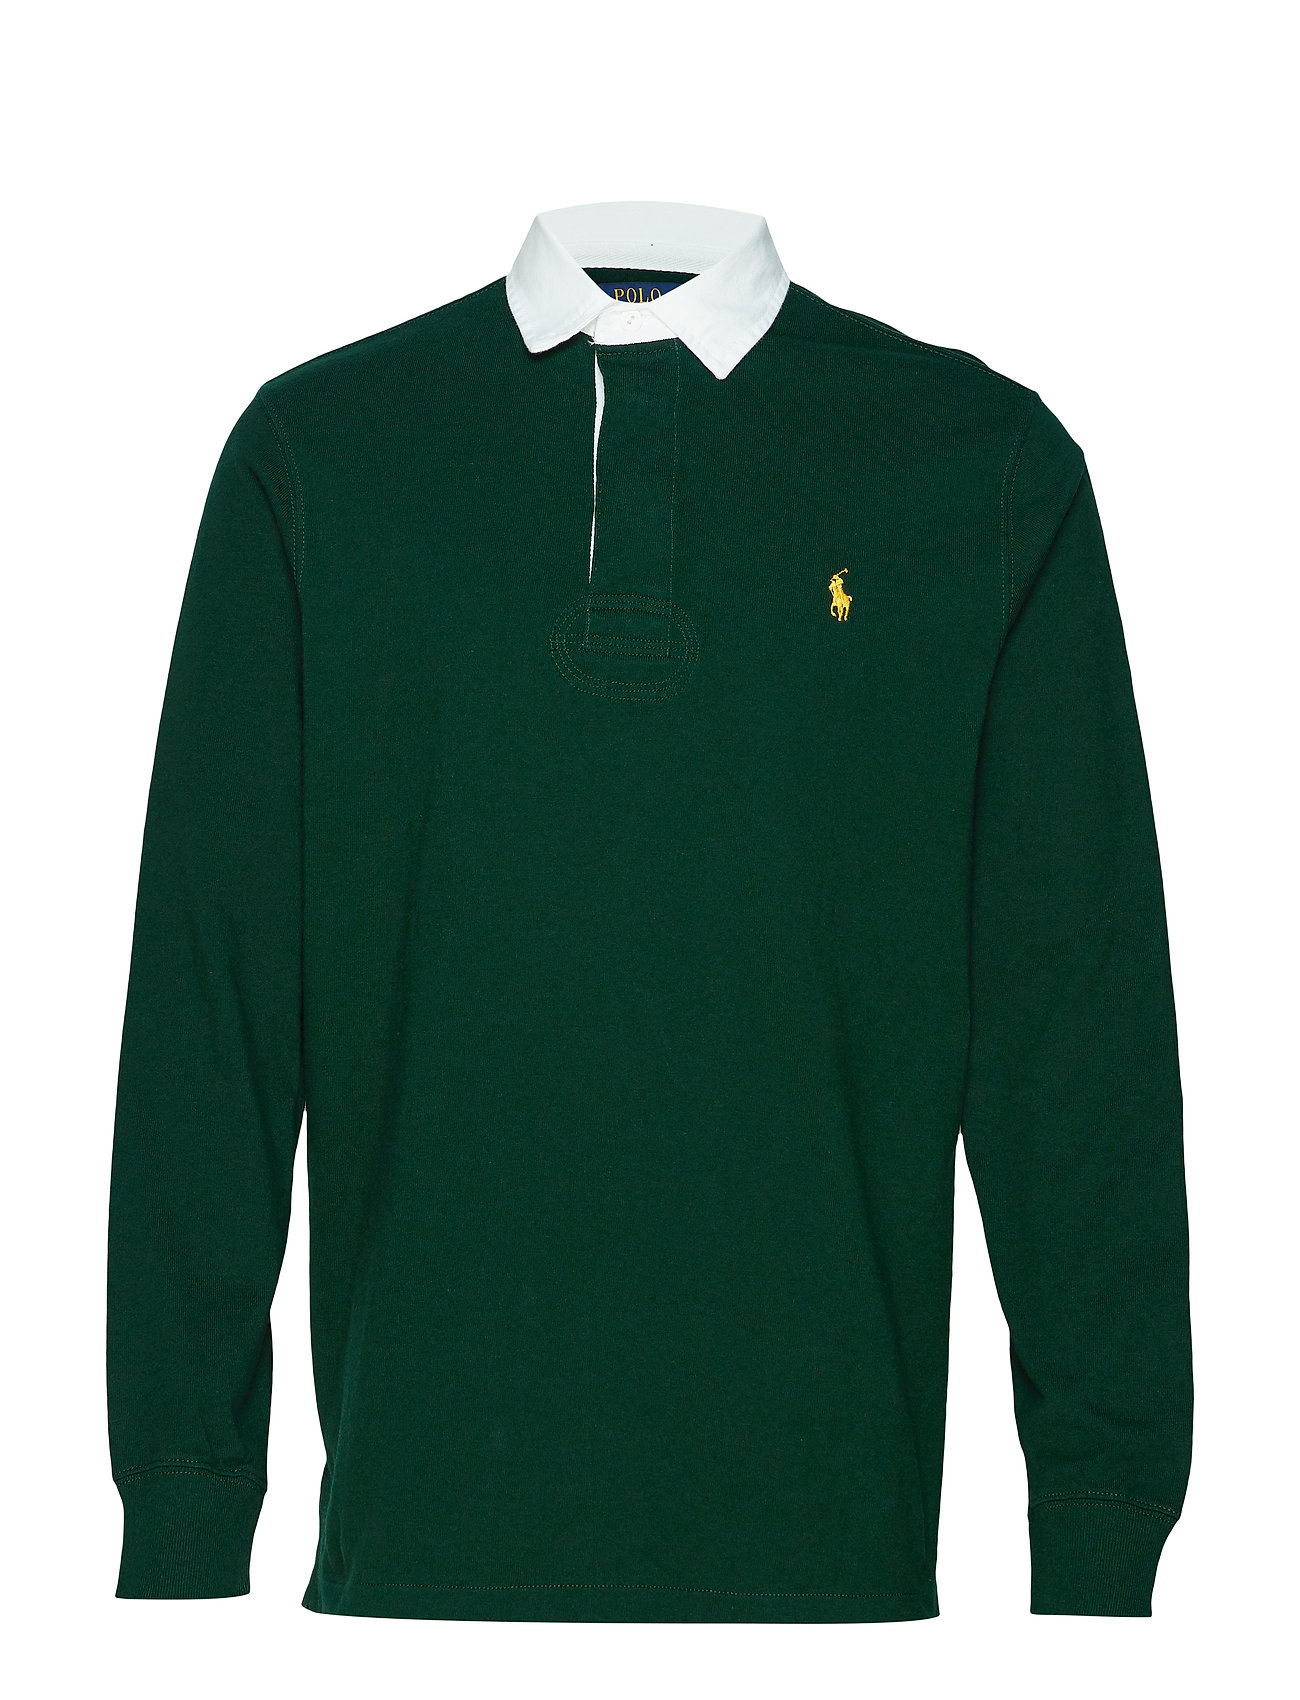 Polo Ralph Lauren The Iconic Rugby Shirt - COLLEGE GREEN